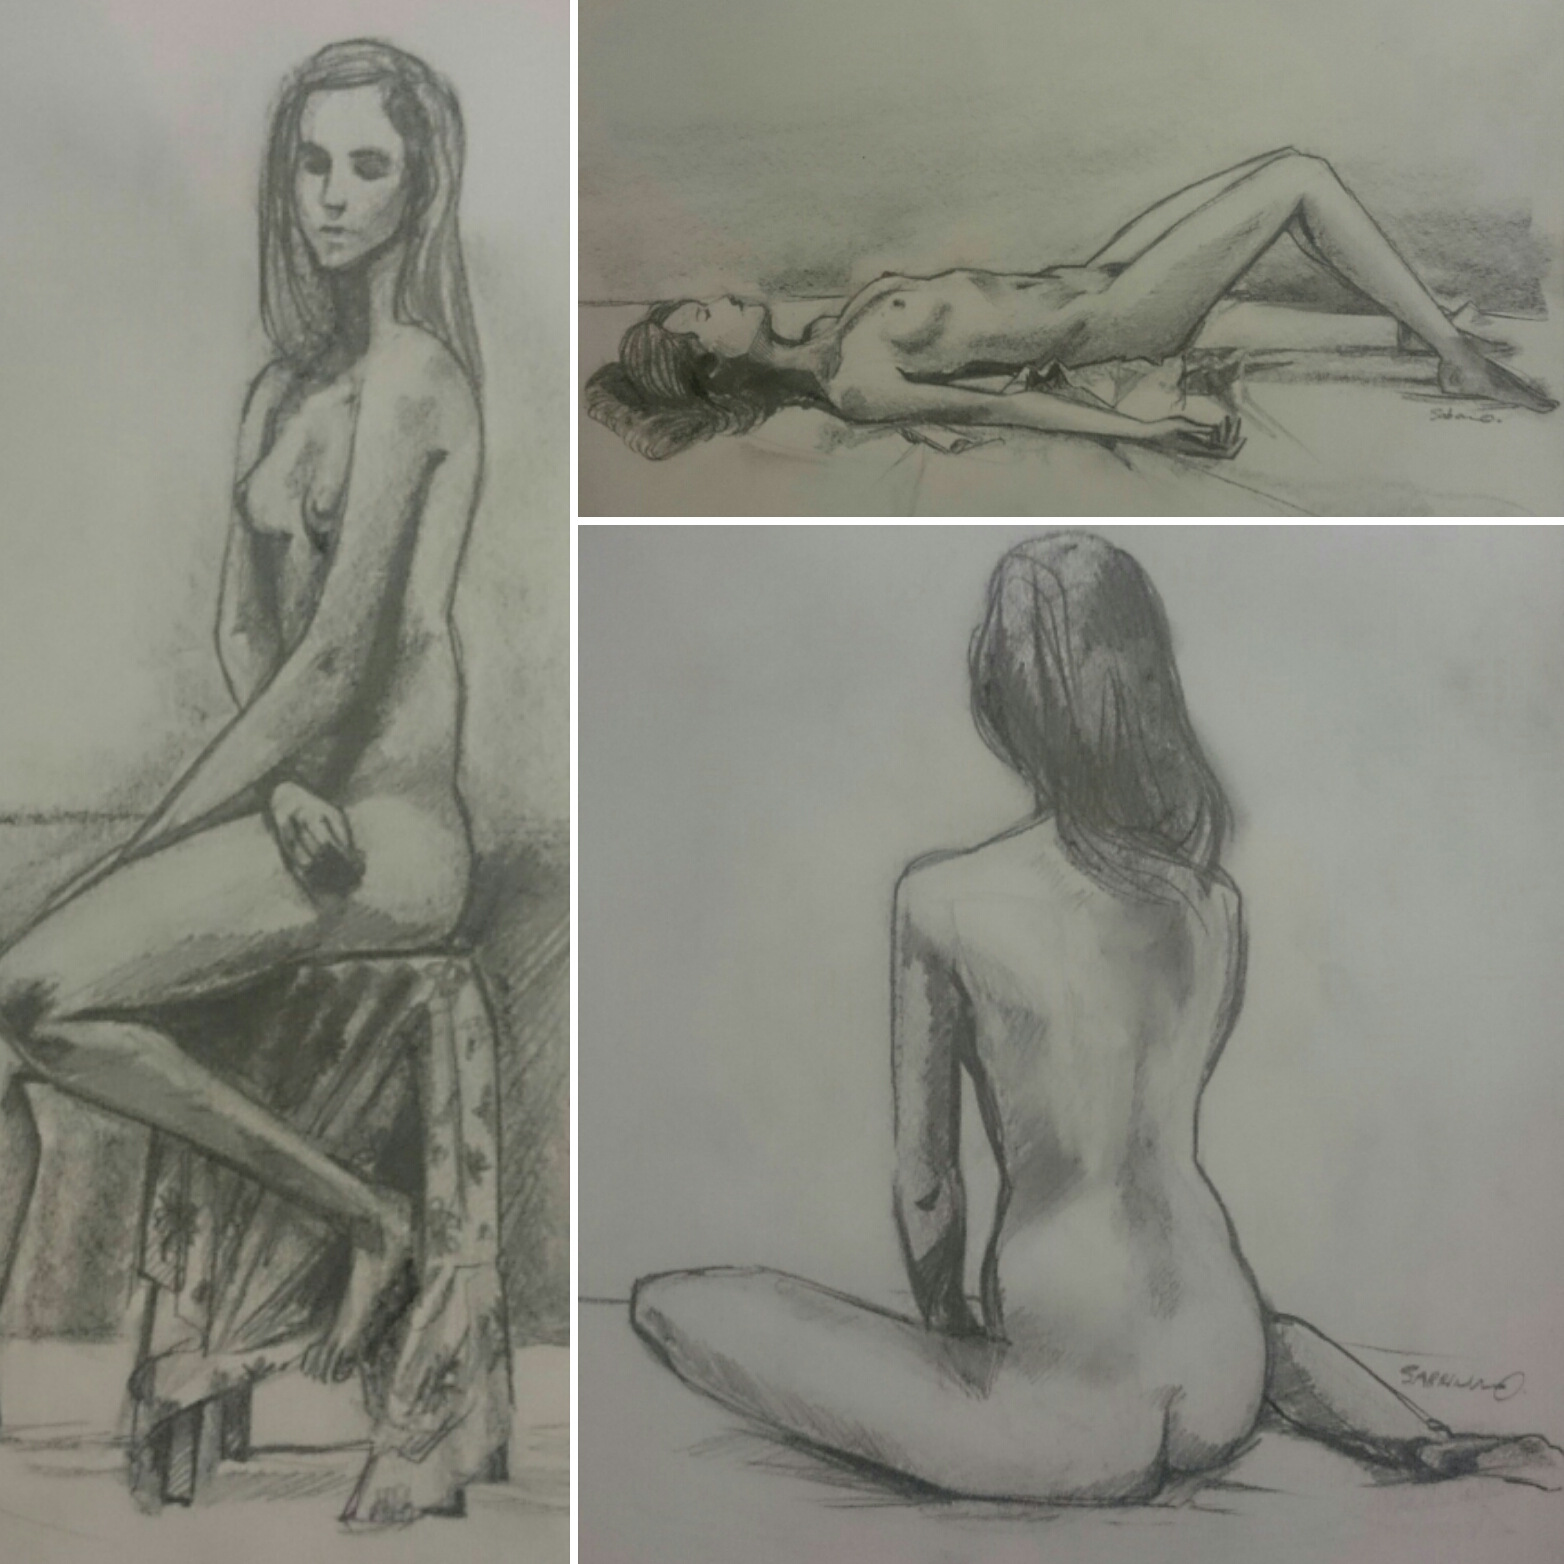 Female Nude Figure Study in Carbon and Graphite